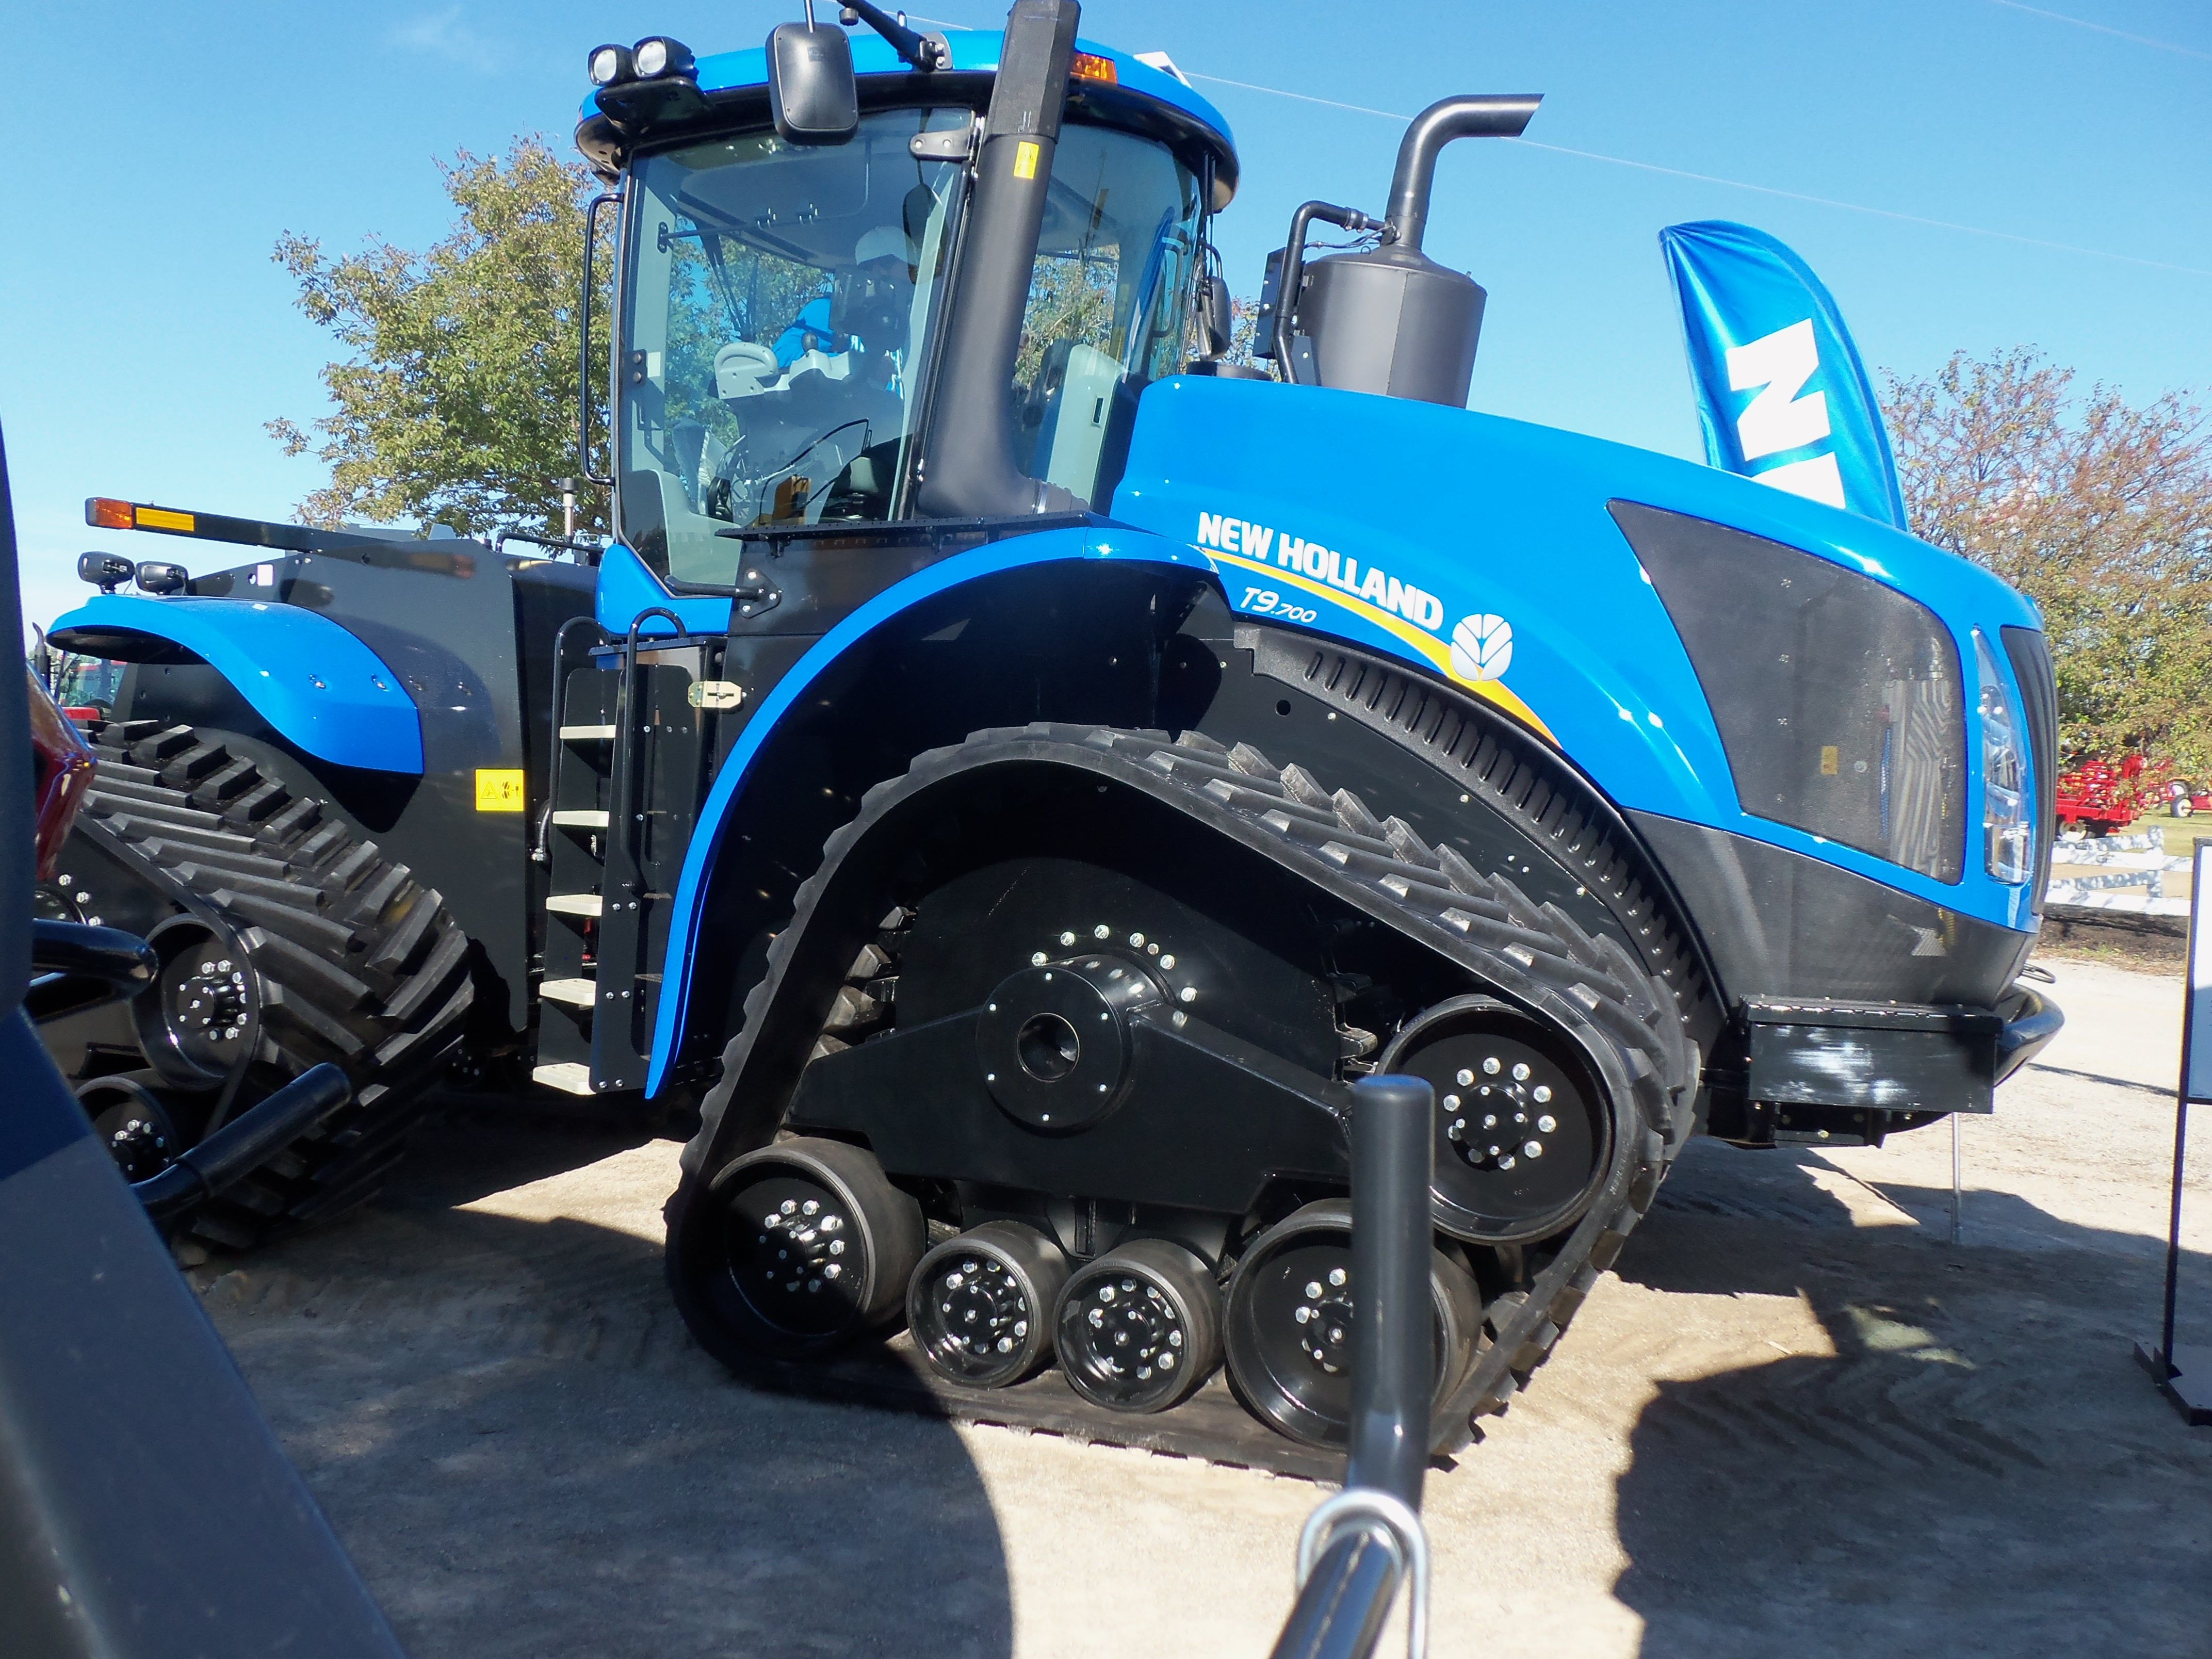 Was surprised to find this 700 hp New Holland T9.700 track tractor